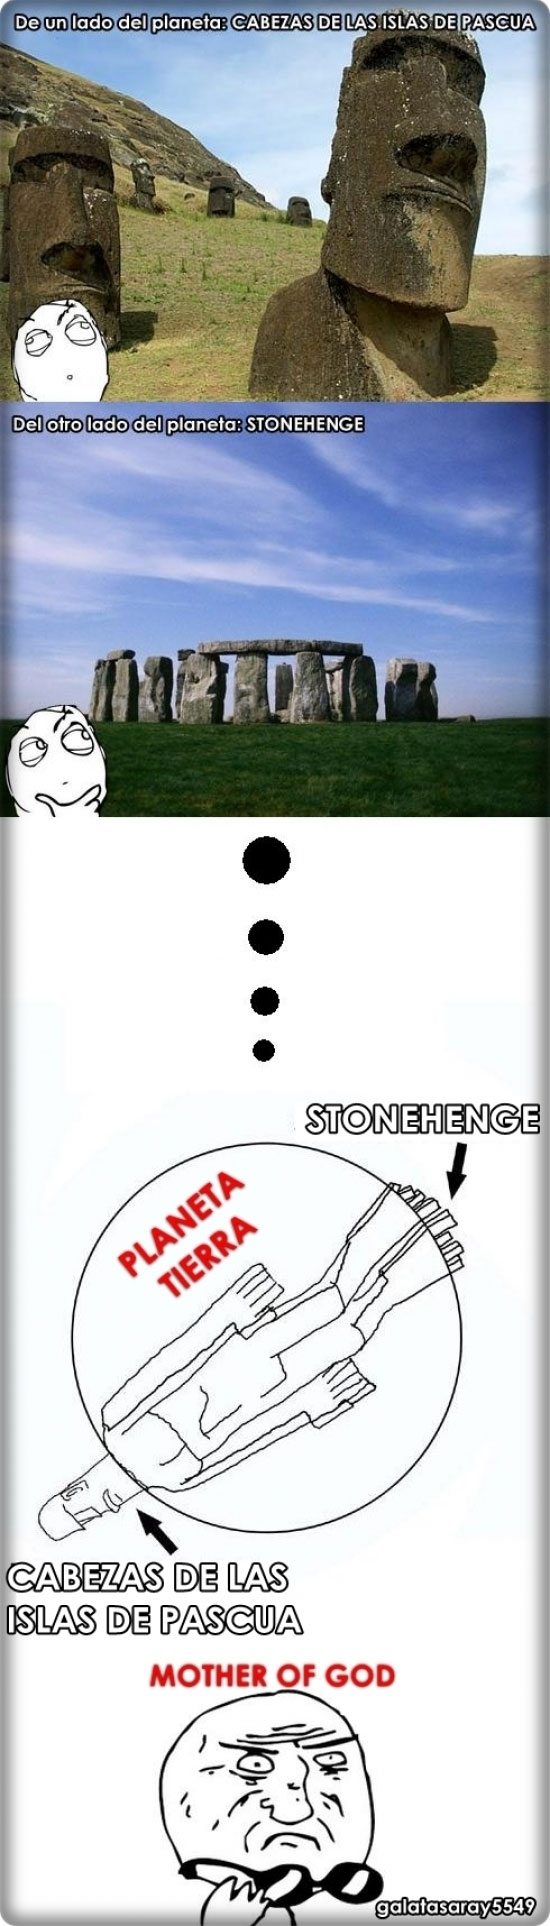 Mother_of_god - El secreto de Stonehenge